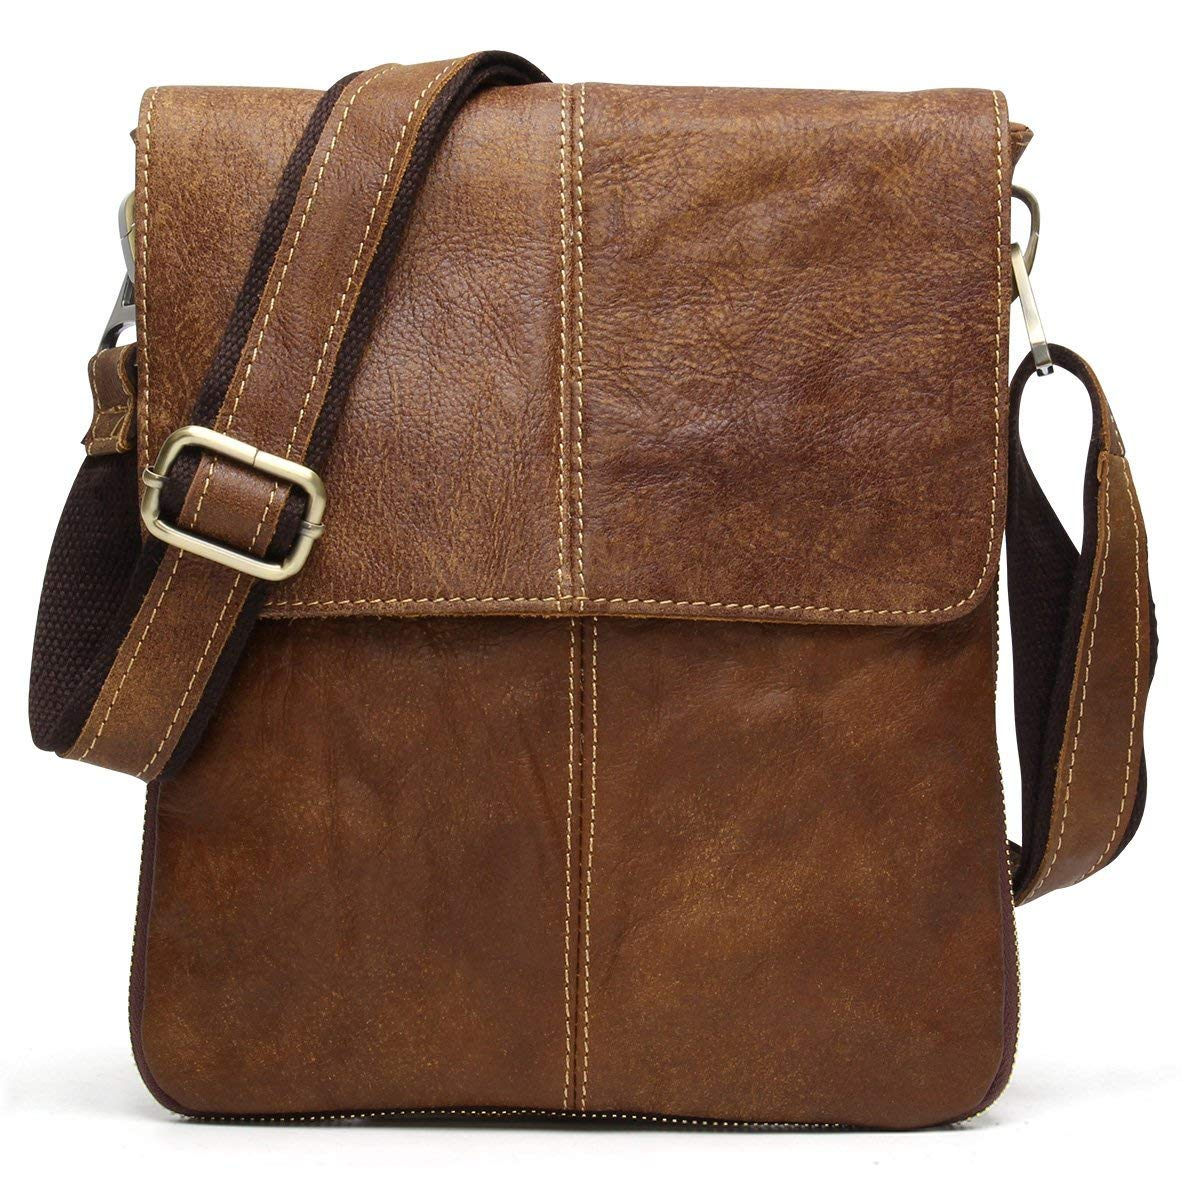 BAIGIO Cross-Body Satchel Messenger Bag Leather Casual Shoulder Purse for Men and Women 1815987-CA